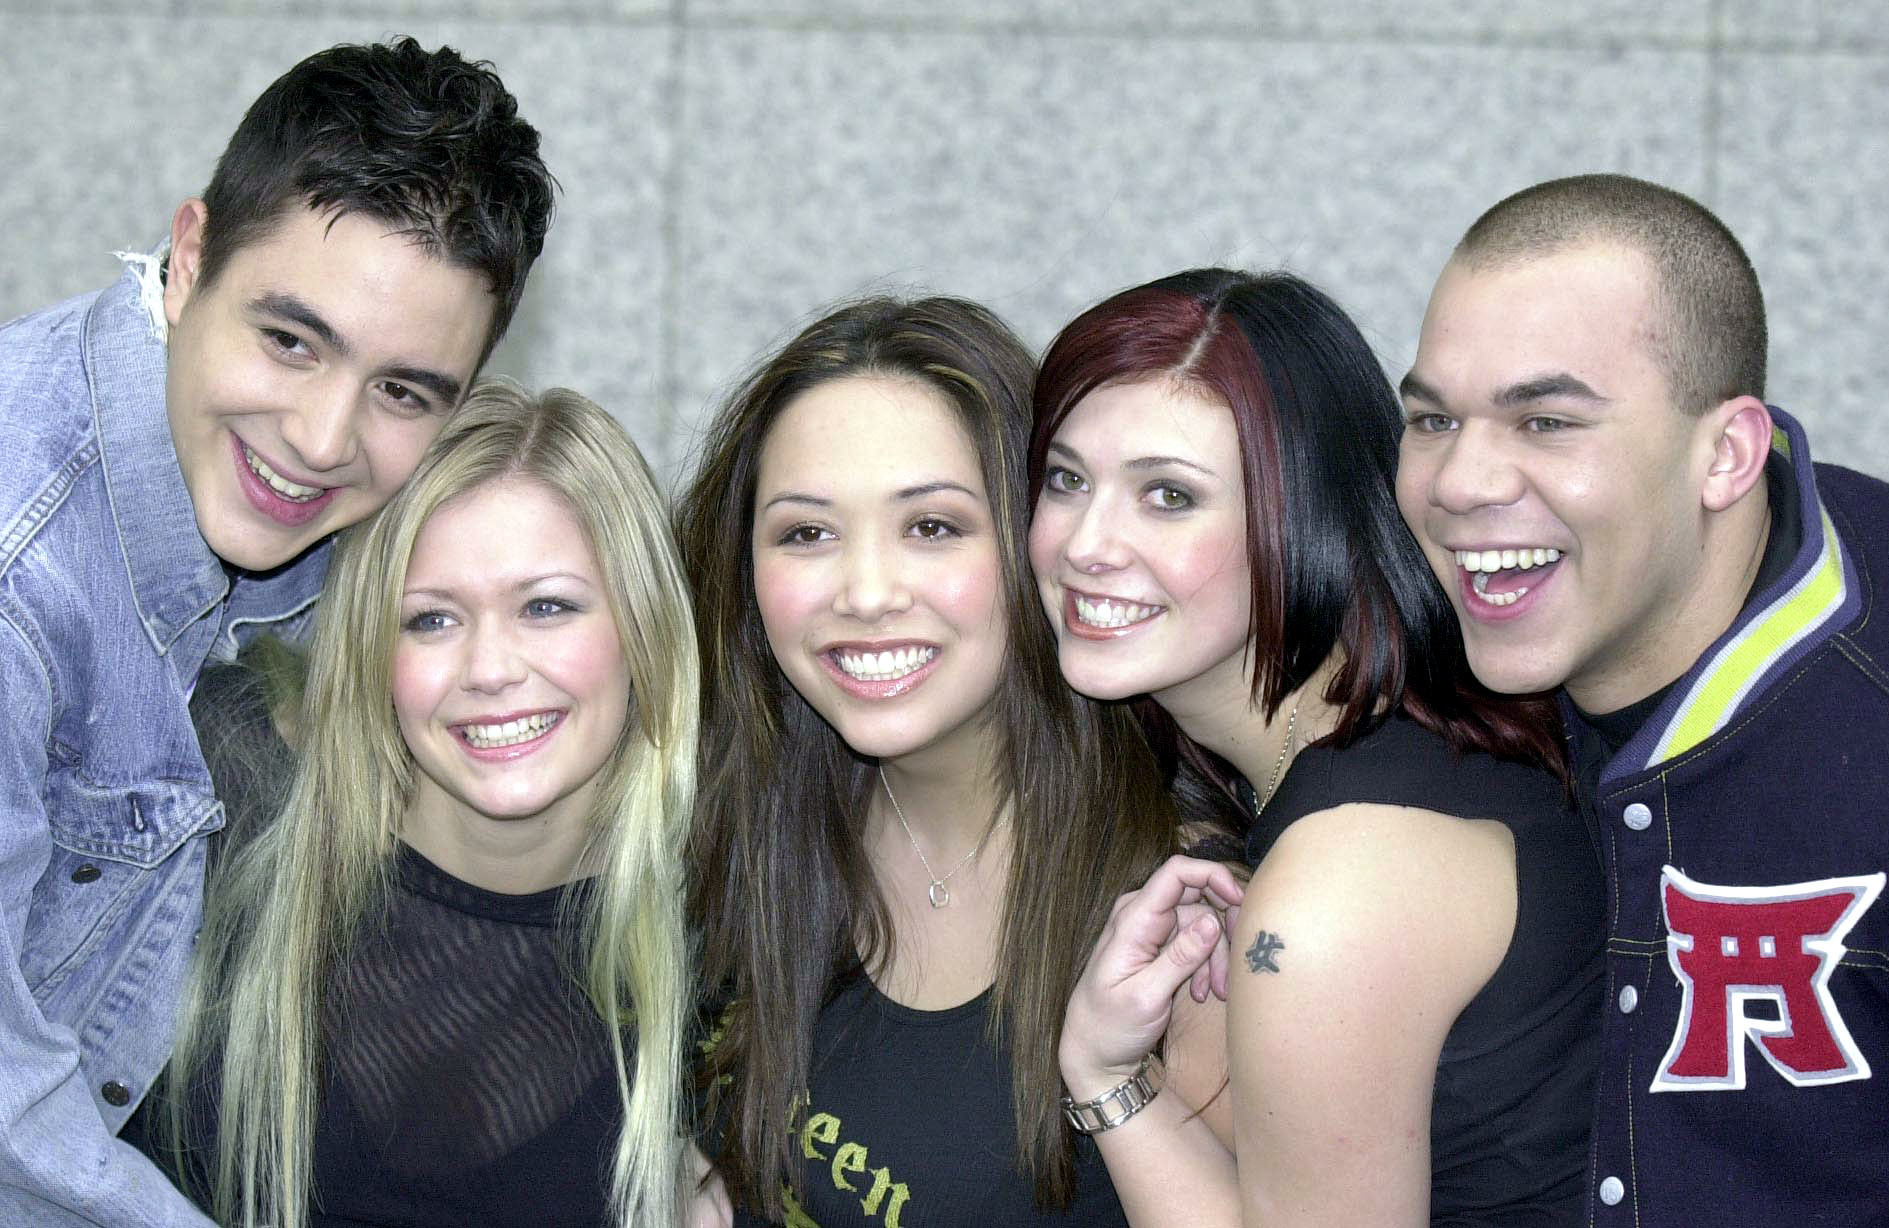 The winners from ITV's Popstars talent search. From the left: Noel Sullivan, Suzanne Shaw, Myleene Klass, Kym Marsh, and Danny Foster (Hear'Say/PA)